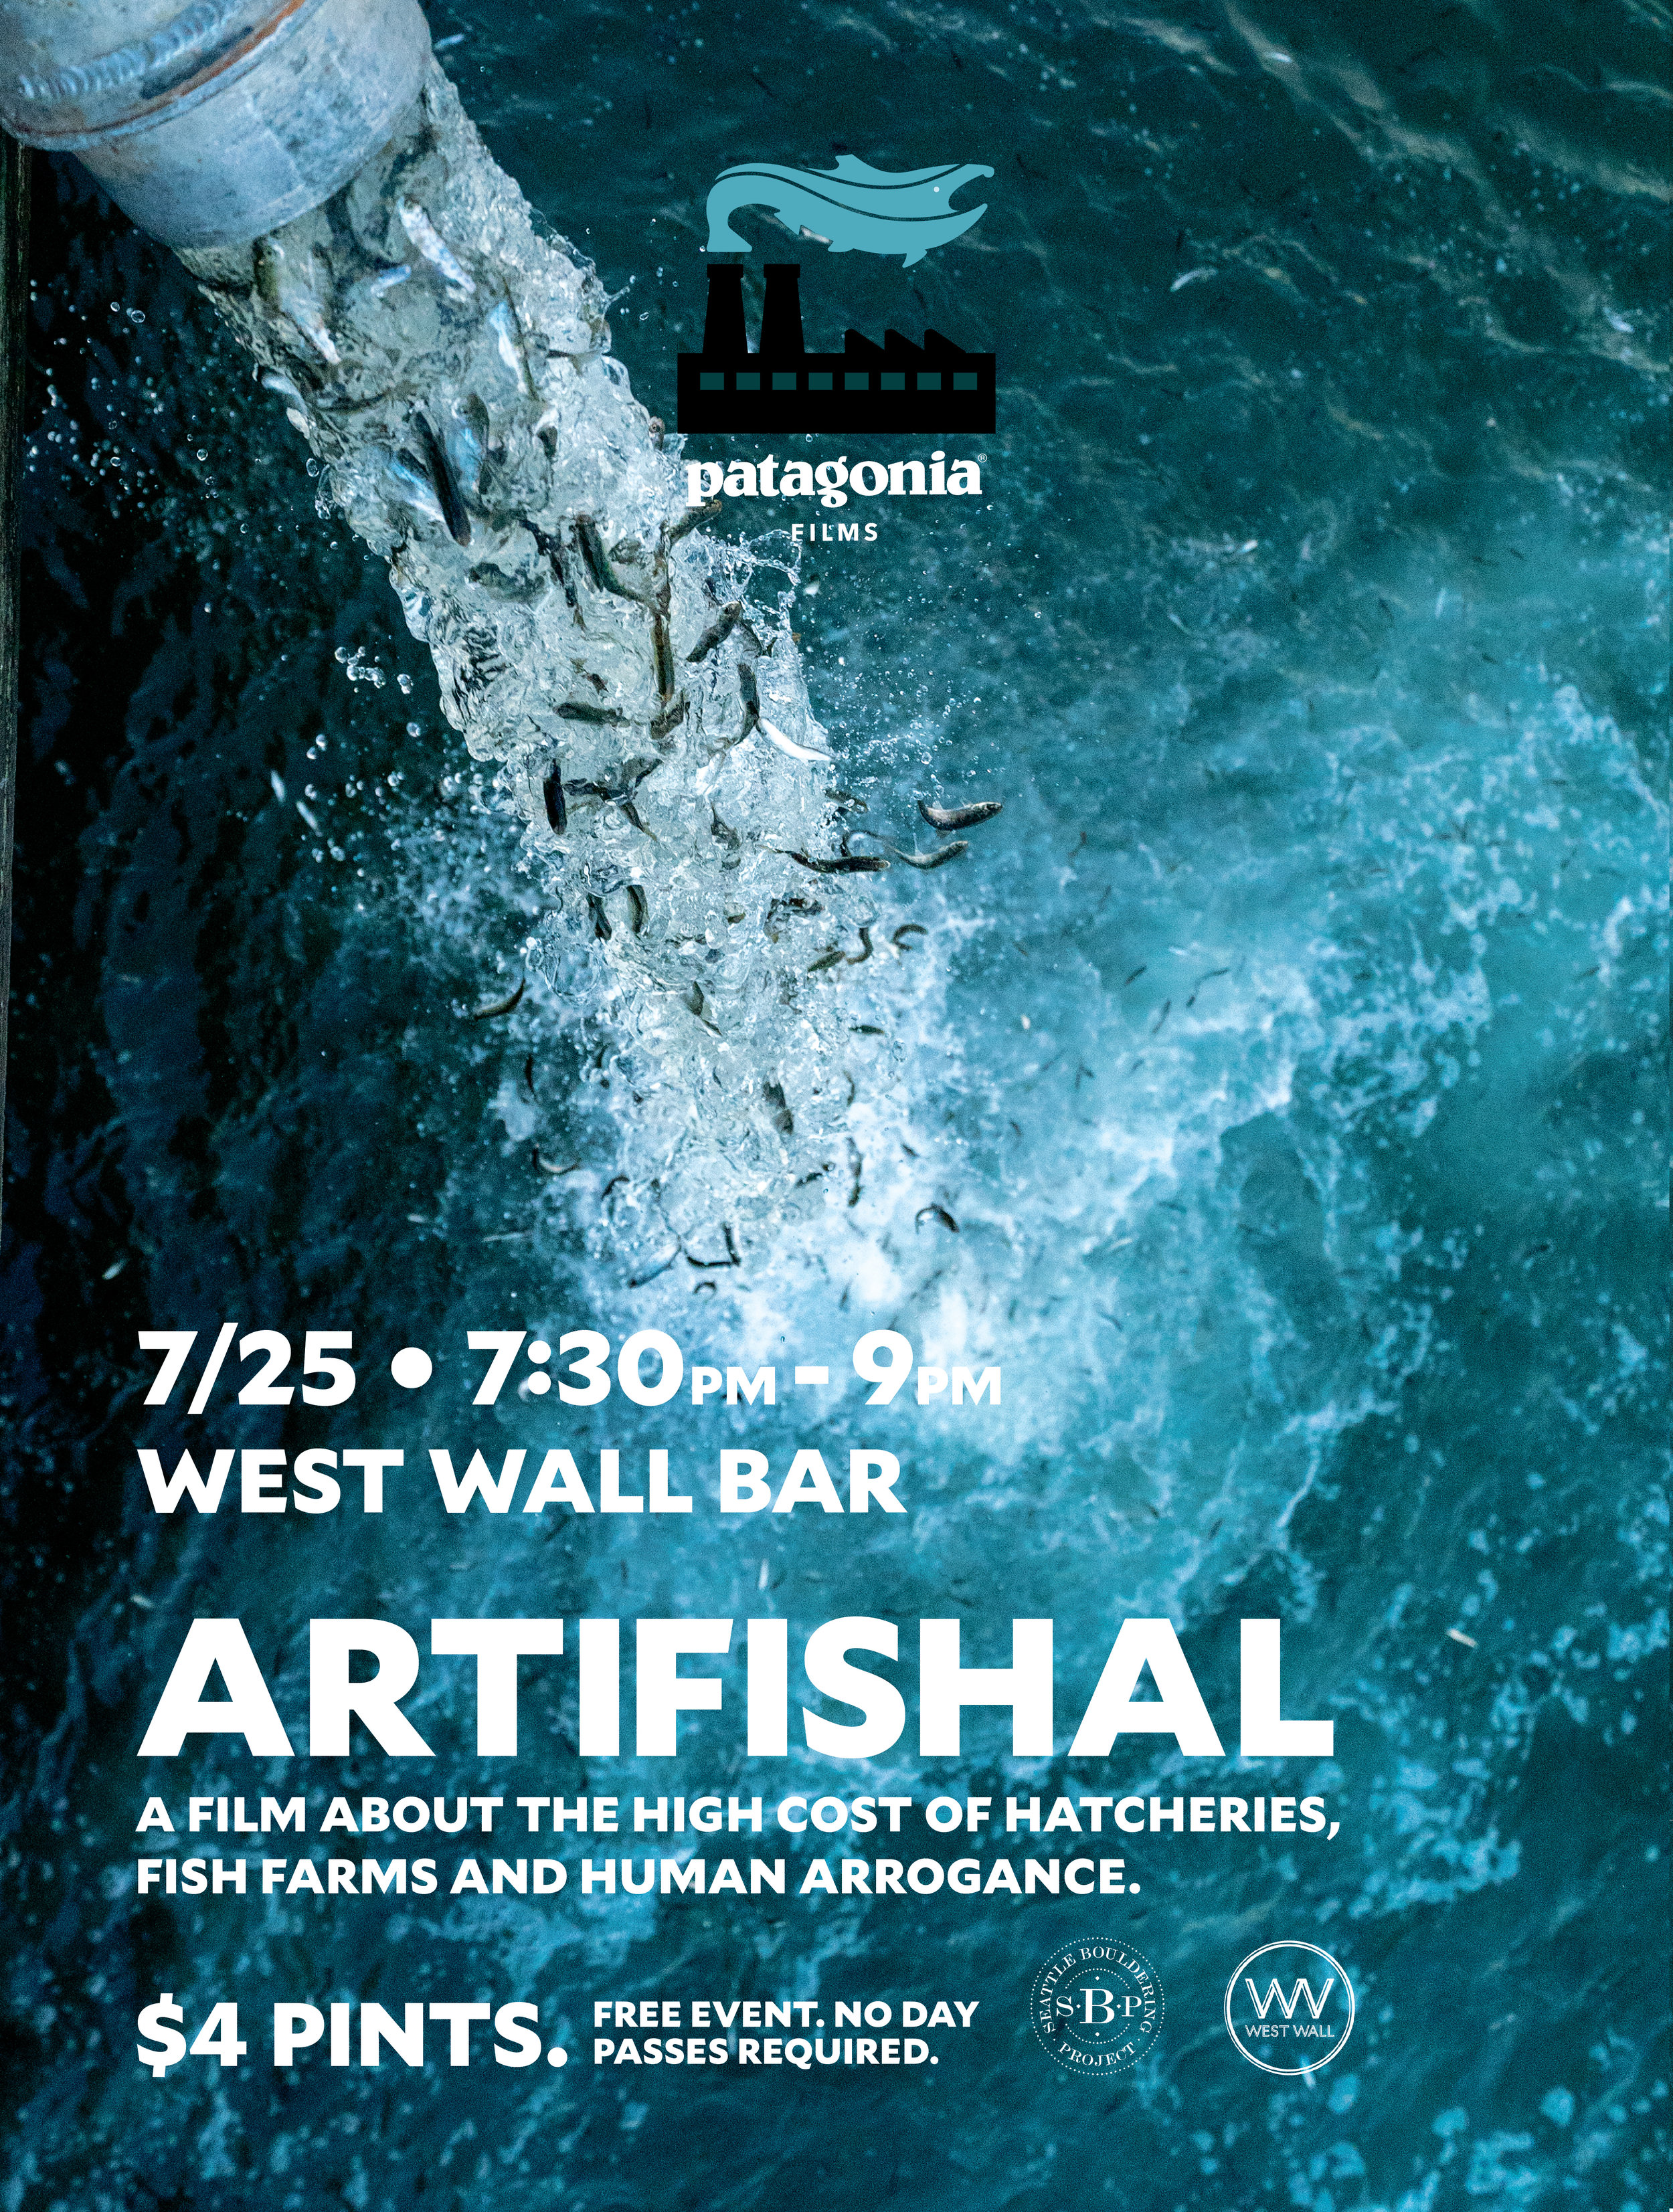 Artifishal  film screening event poster.